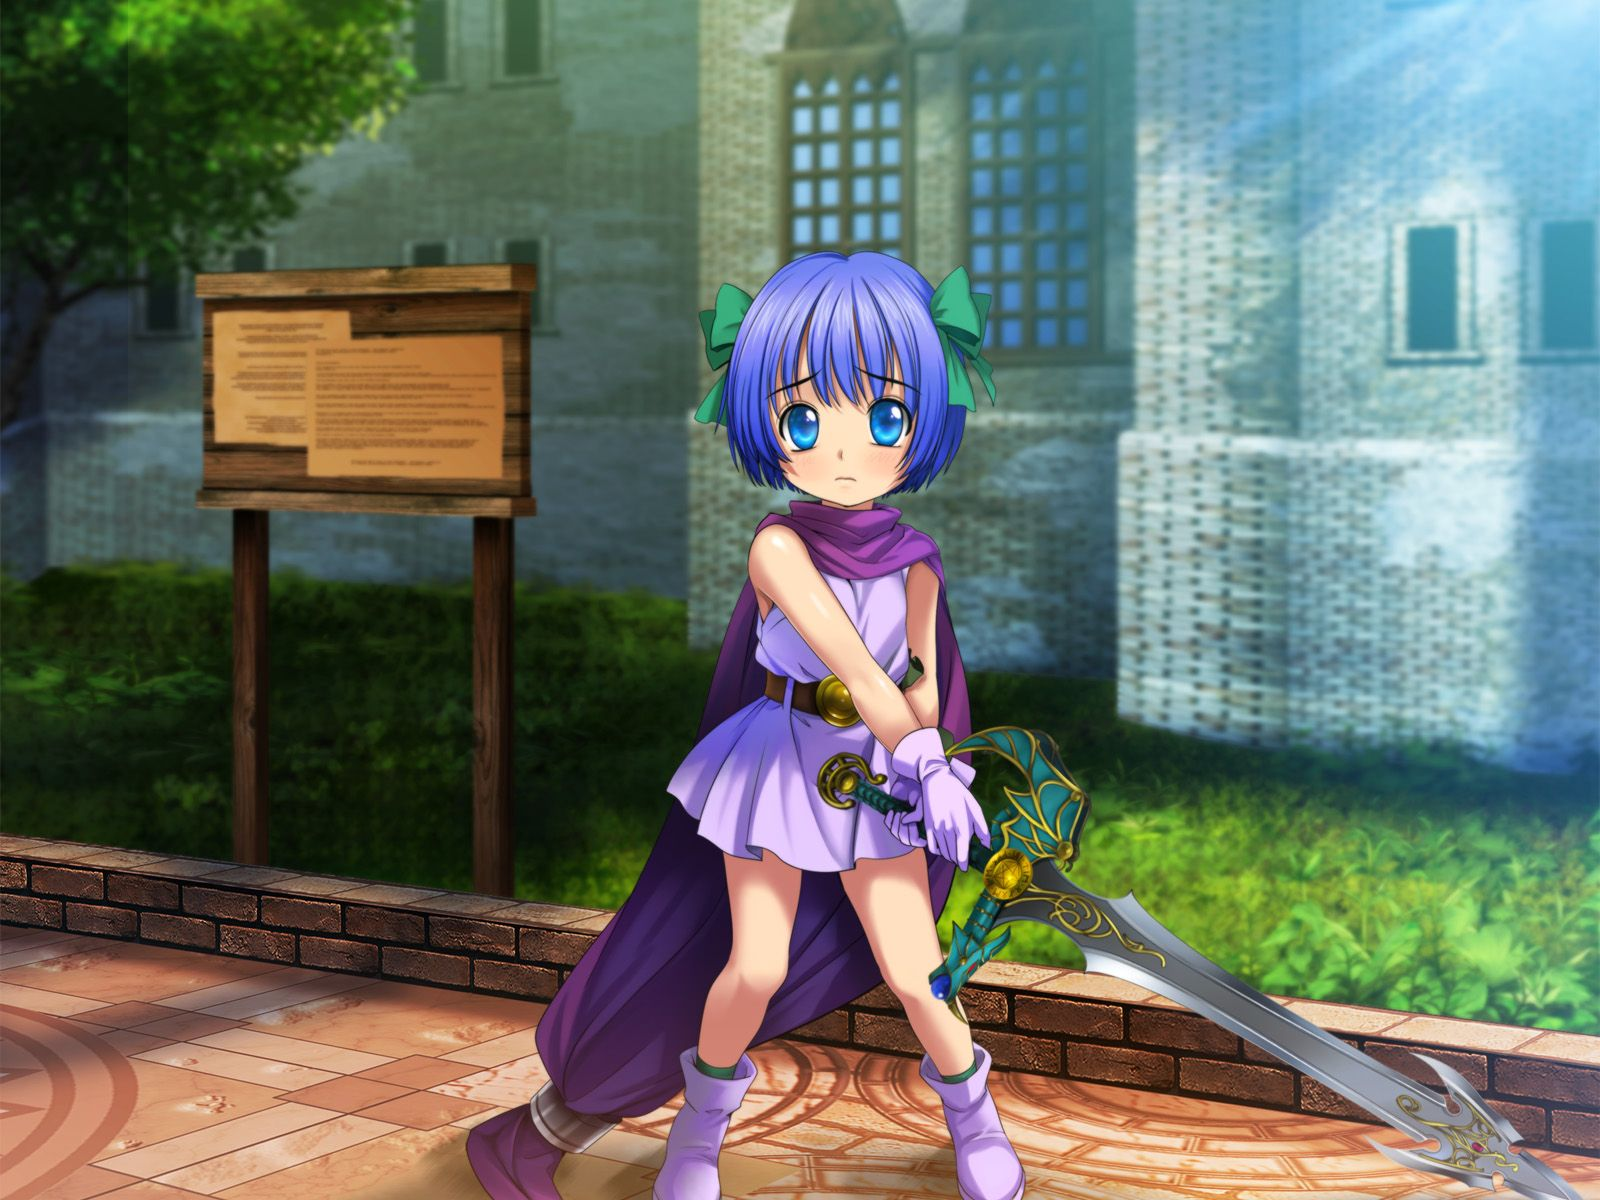 Dragon quest floraqus daughterg 16001200 dragon quest dragon quest floraqus daughterg 16001200 aloadofball Choice Image